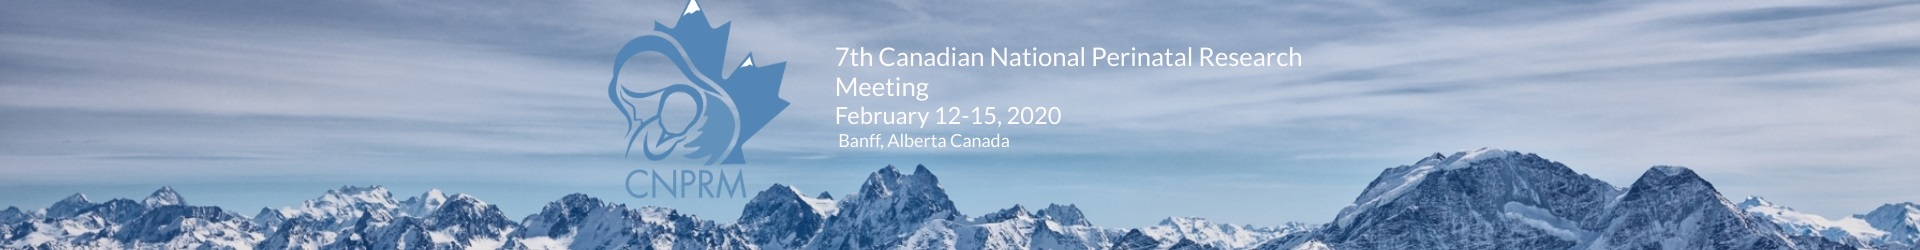 2020 7th Canadian National Perinatal Research Meeting (CNPRM) Event Banner